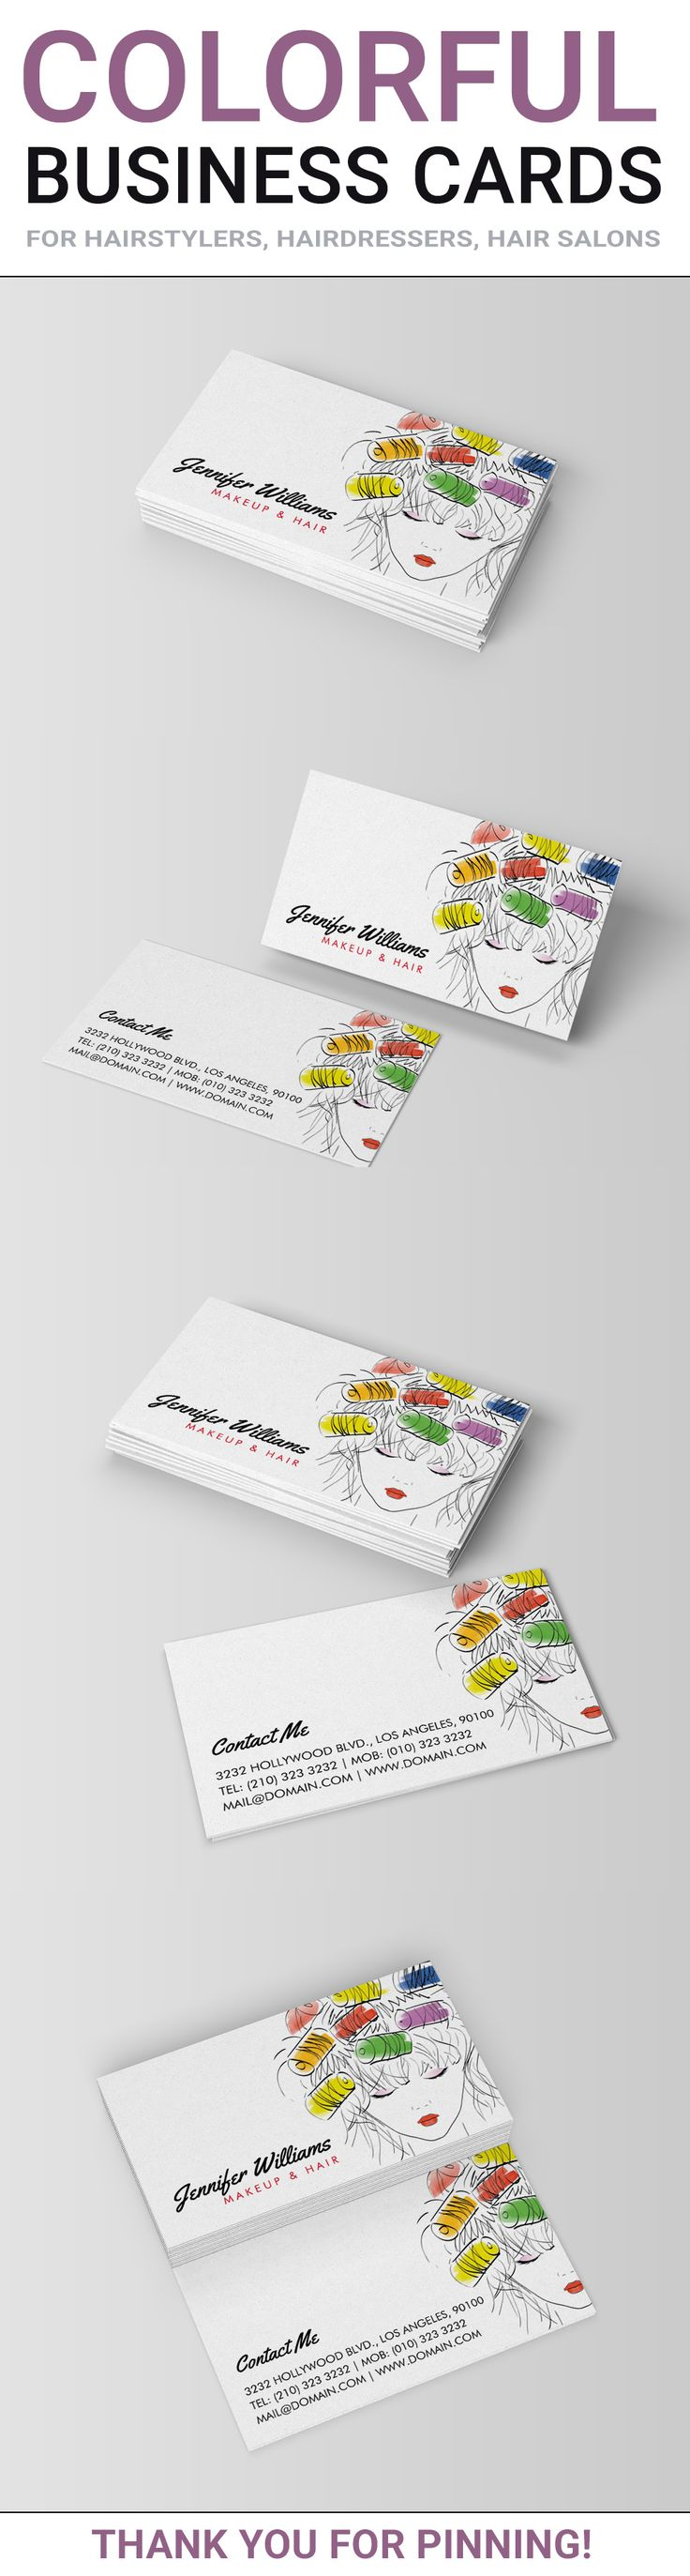 153 best business card images on pinterest